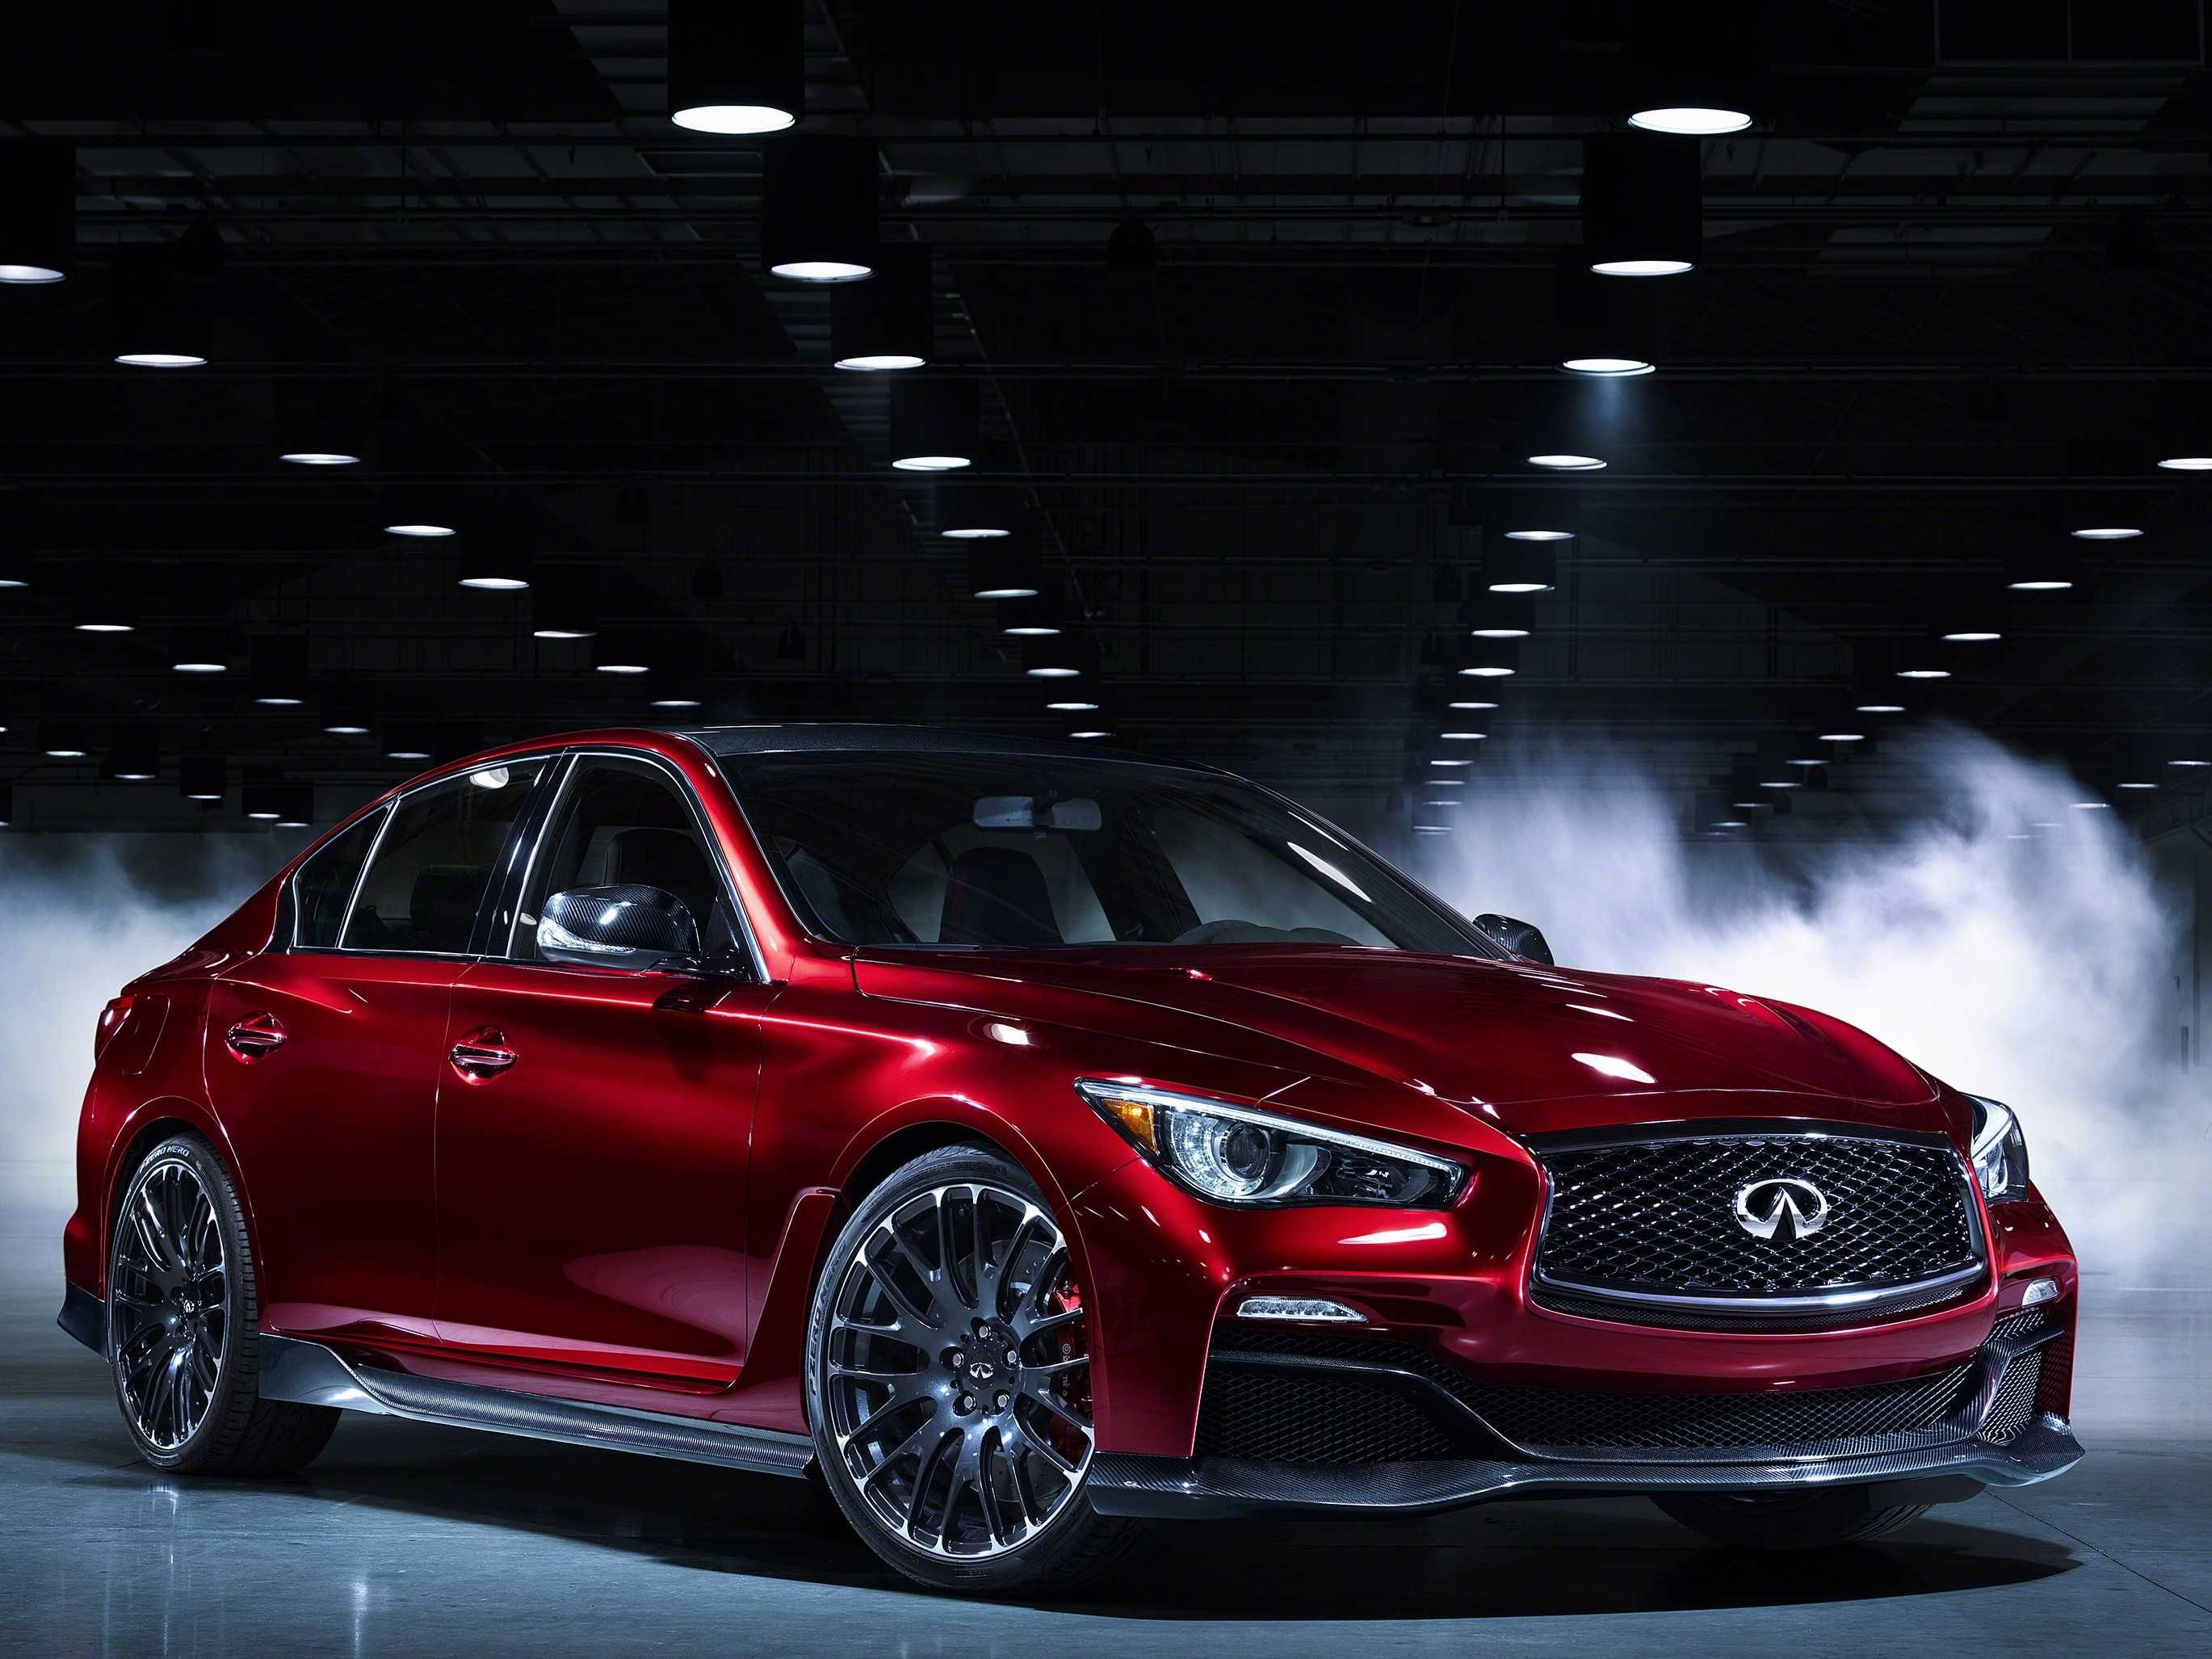 Were About To Find Out If Infiniti Is Serious About Being A Top Luxury Car Brand Jpg Infiniti Q50 Sedan Cars 2015 Infiniti Q50